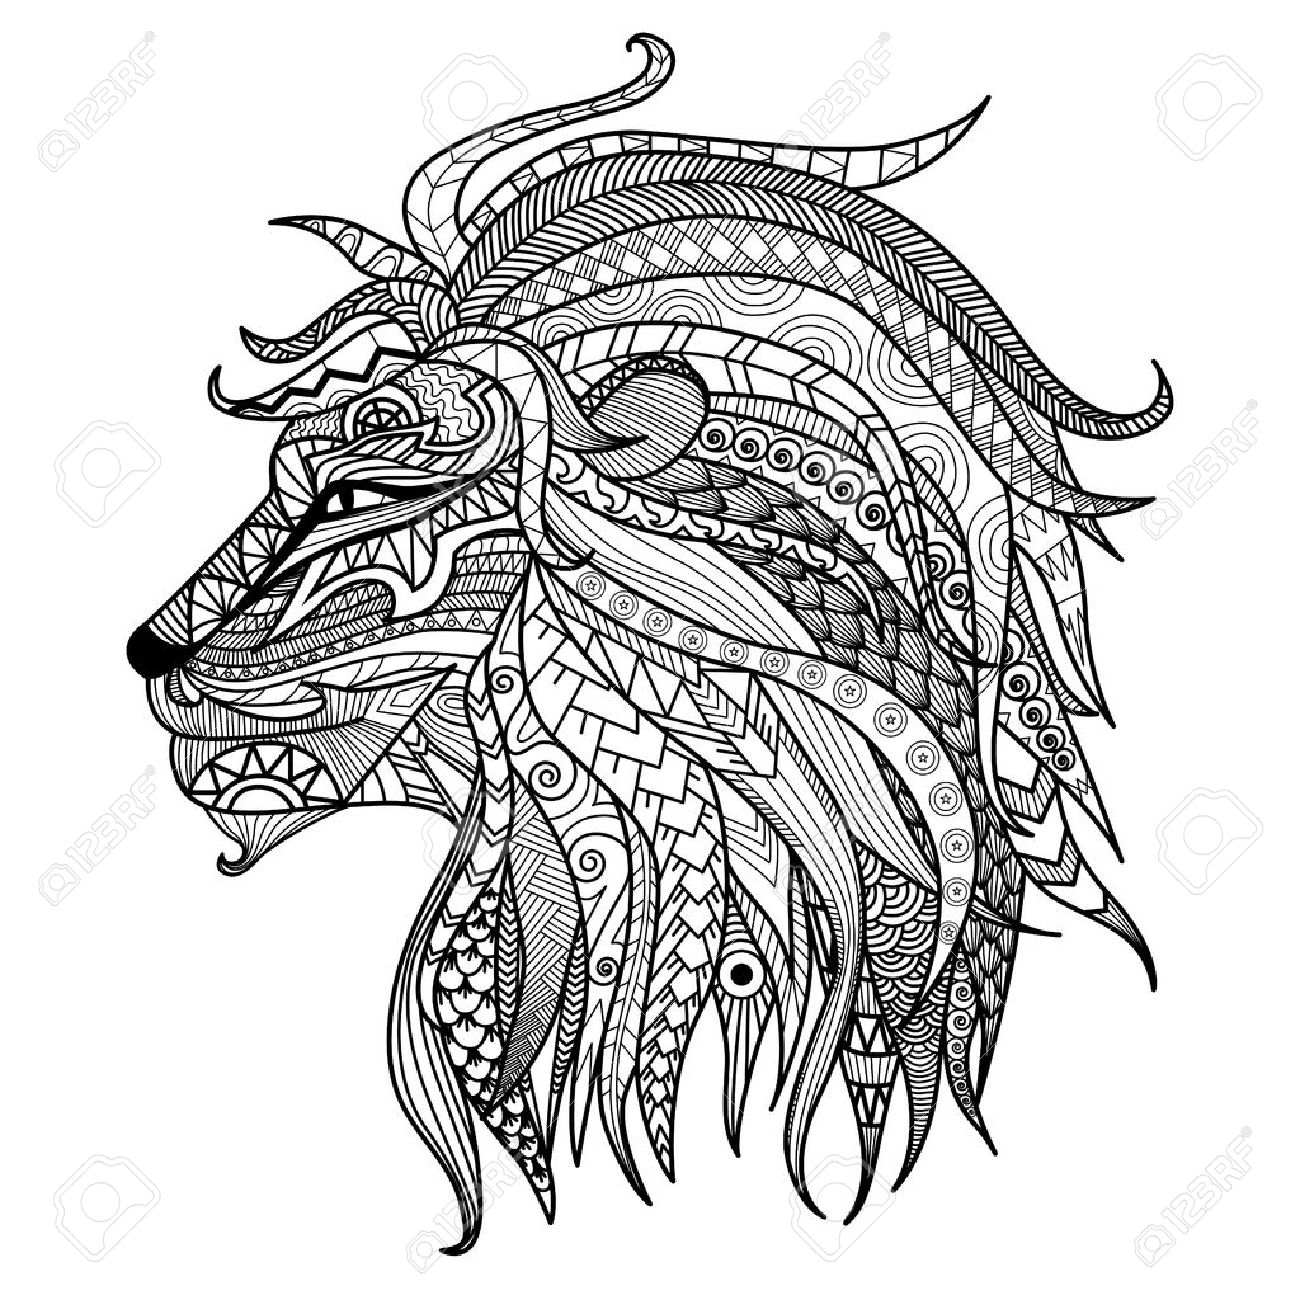 1300x1300 Hand Drawn Lion Coloring Page. Royalty Free Cliparts, Vectors,